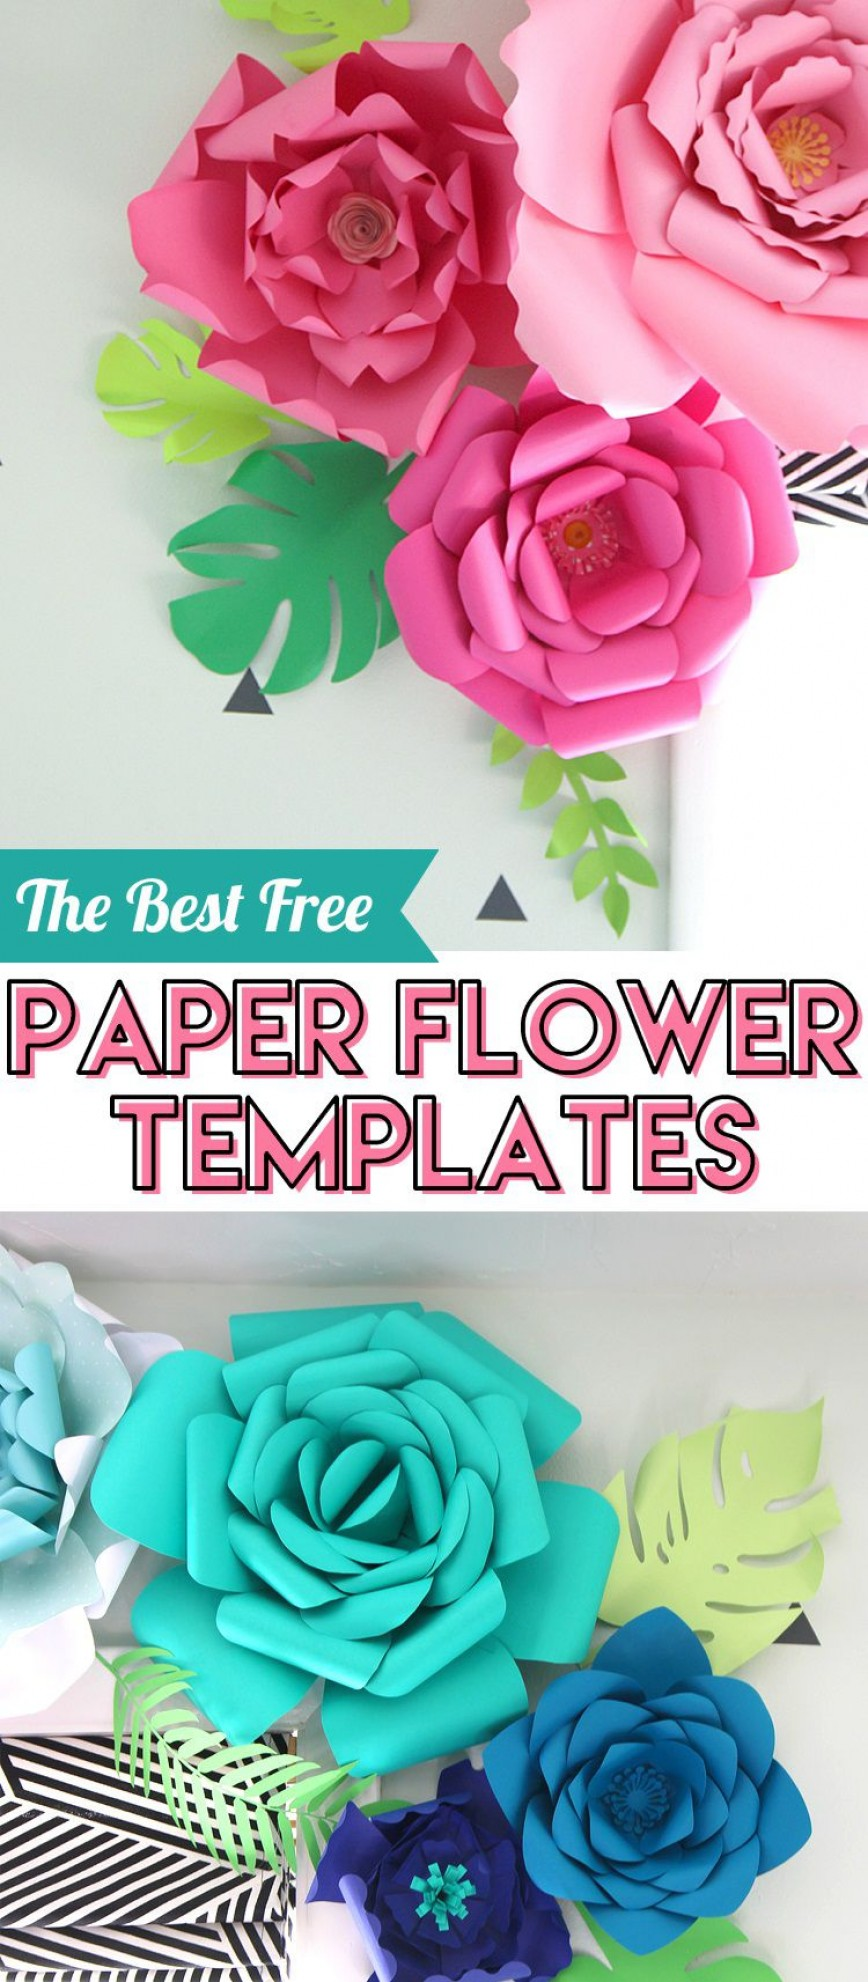 007 Impressive Giant Paper Flower Template Free Download Picture